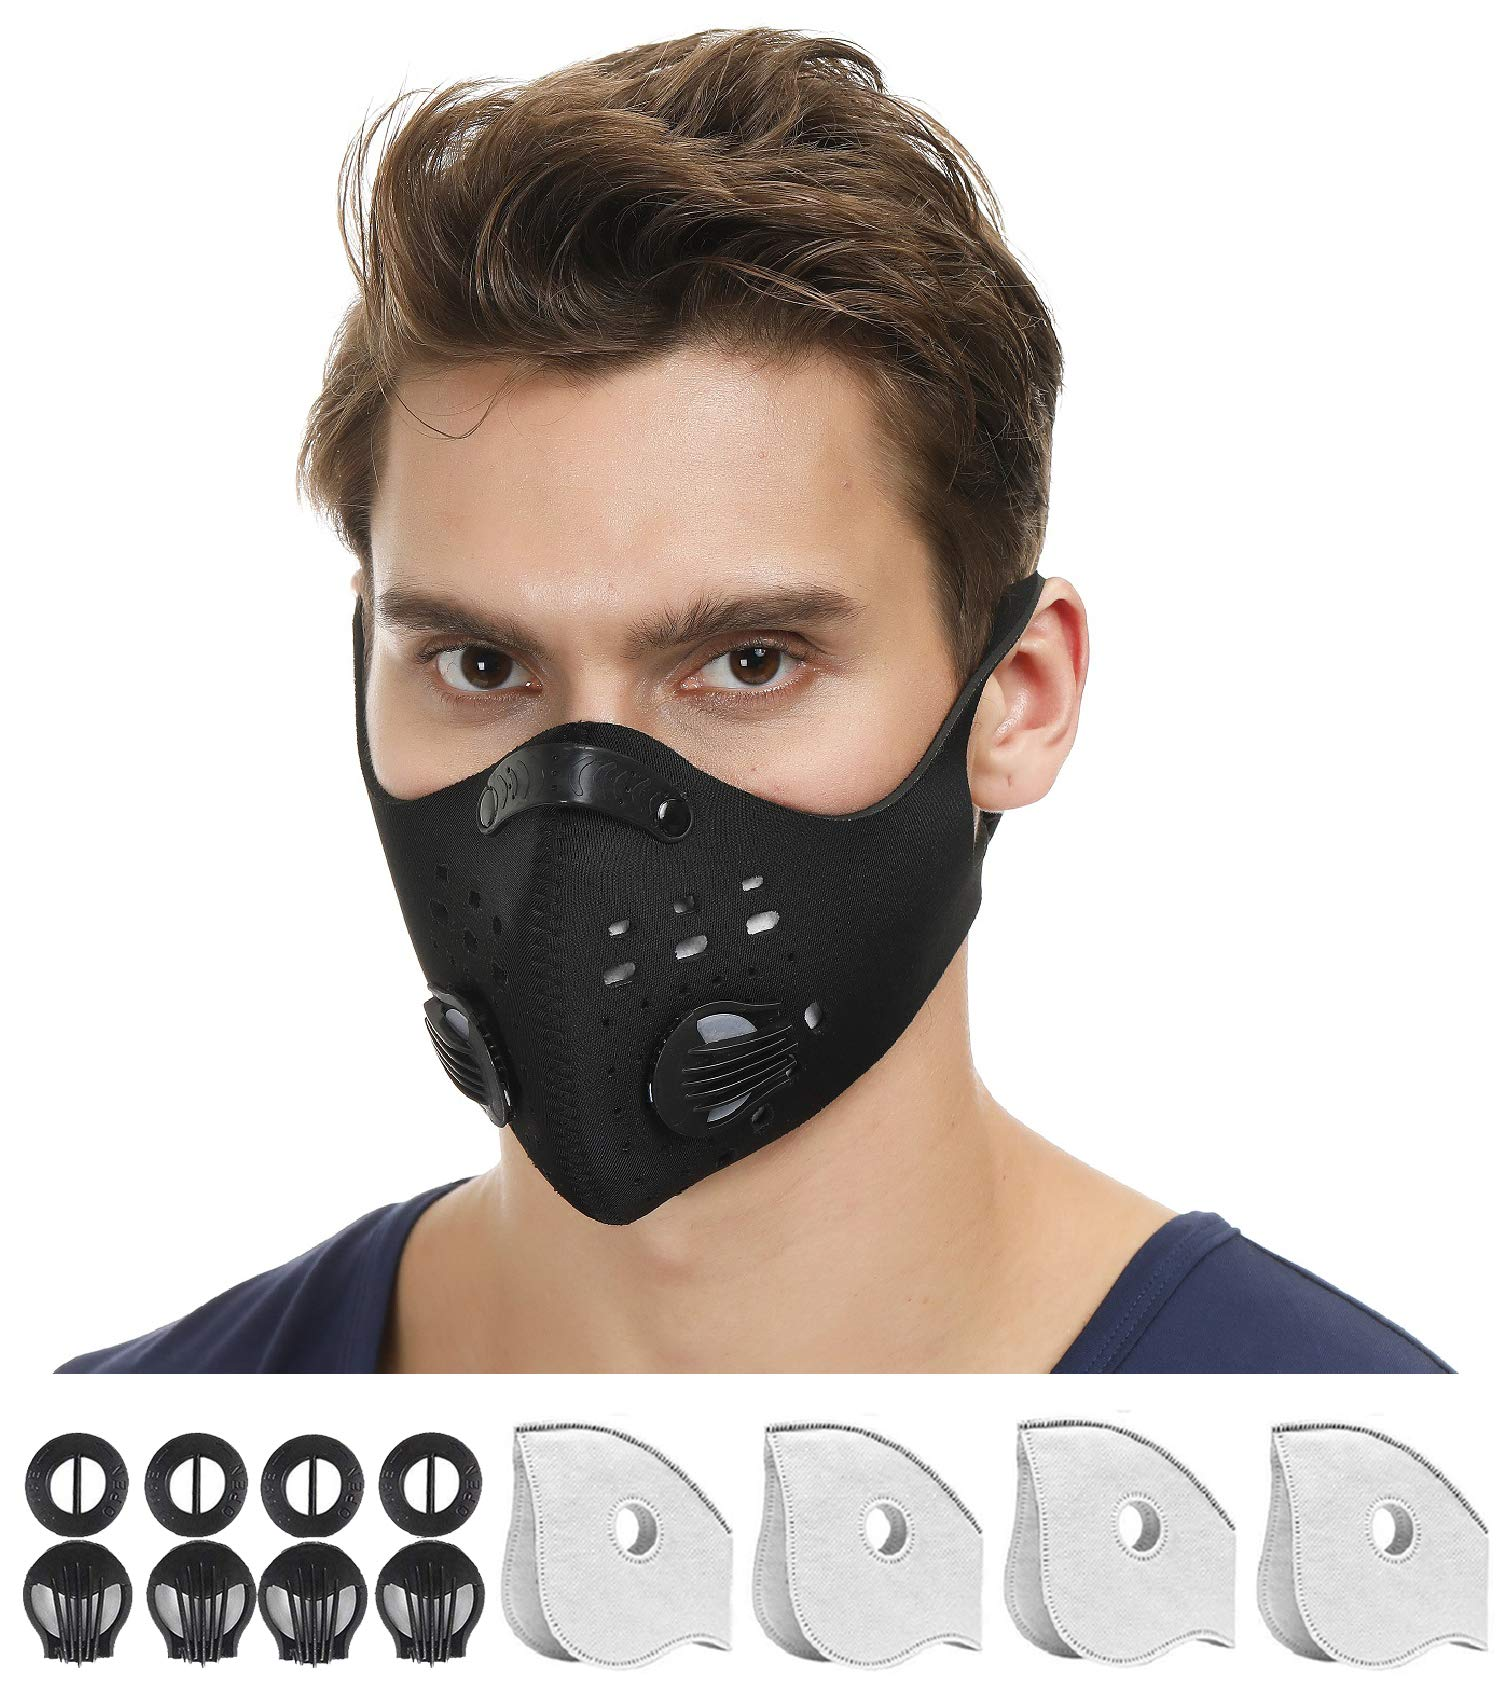 NHForest Dust Mask   Mouth Mask Respirator with 4 Carbon N99 Filters with 4 Exhalation Valves for Pollution Pollen Allergy Woodworking Mowing Running   Washable and Reusable Neoprene Mask for Outdoor